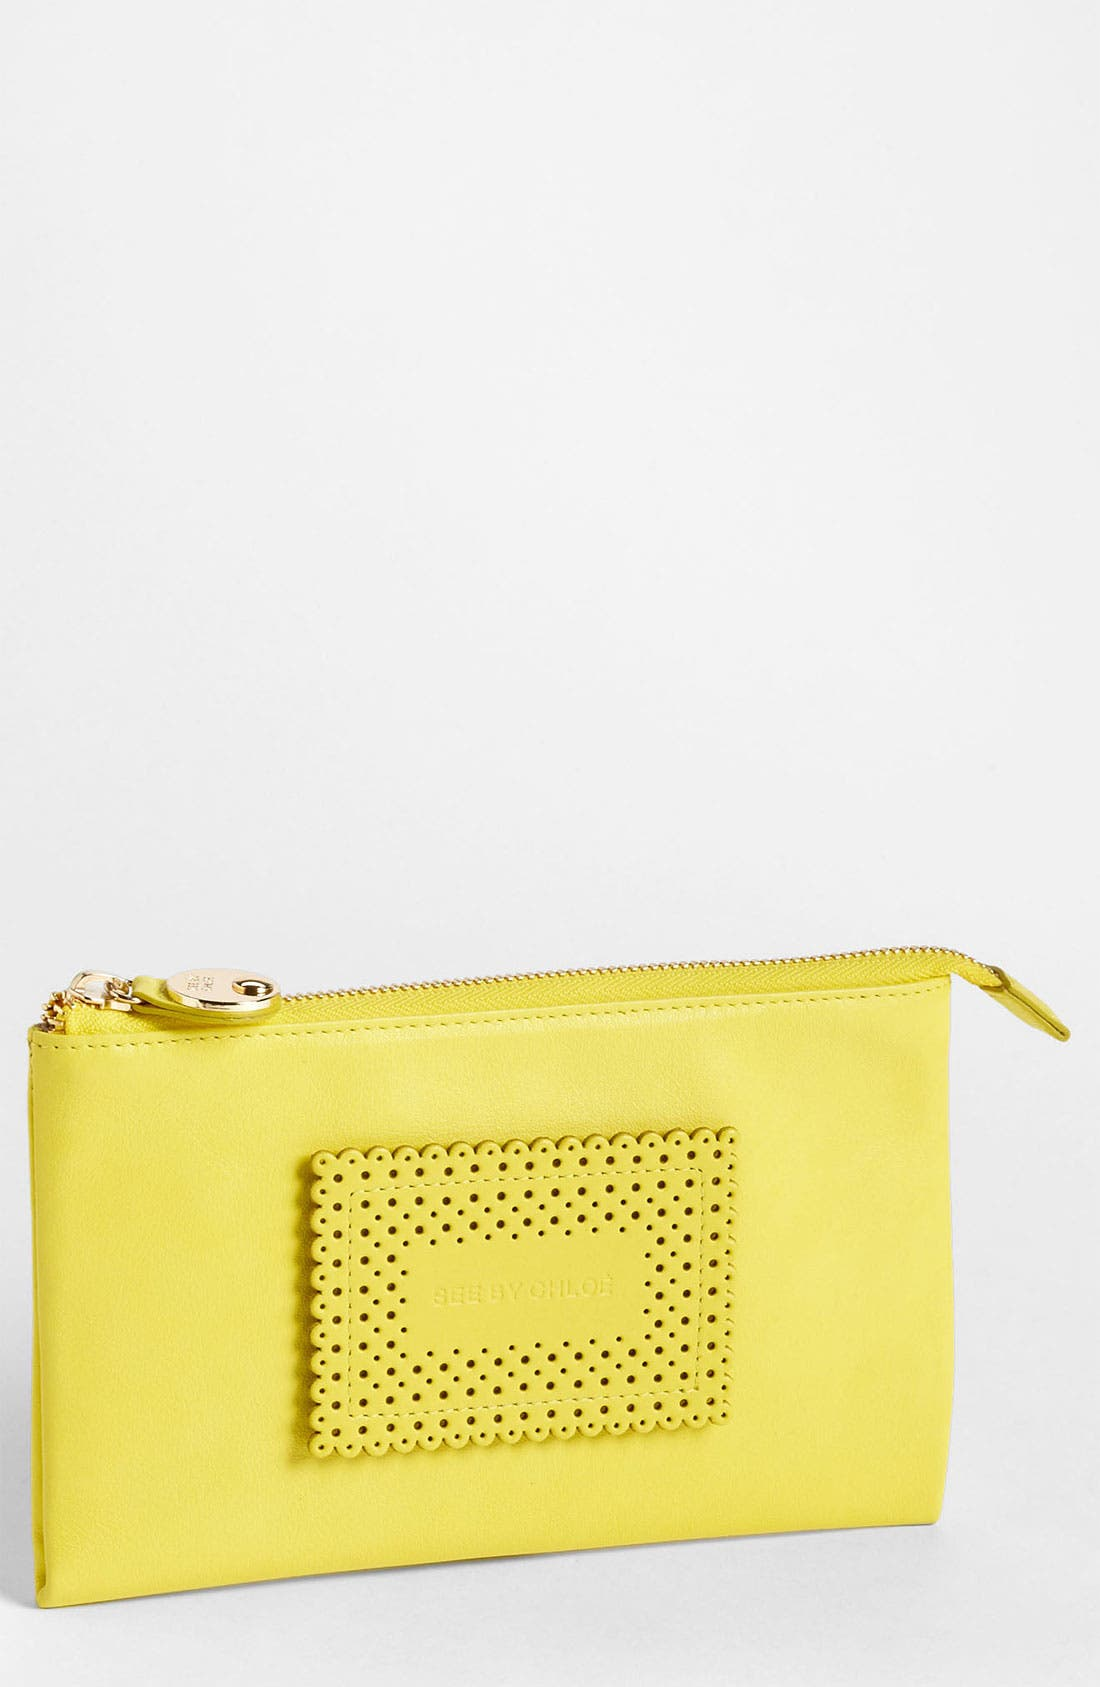 Main Image - See by Chloé Leather Clutch